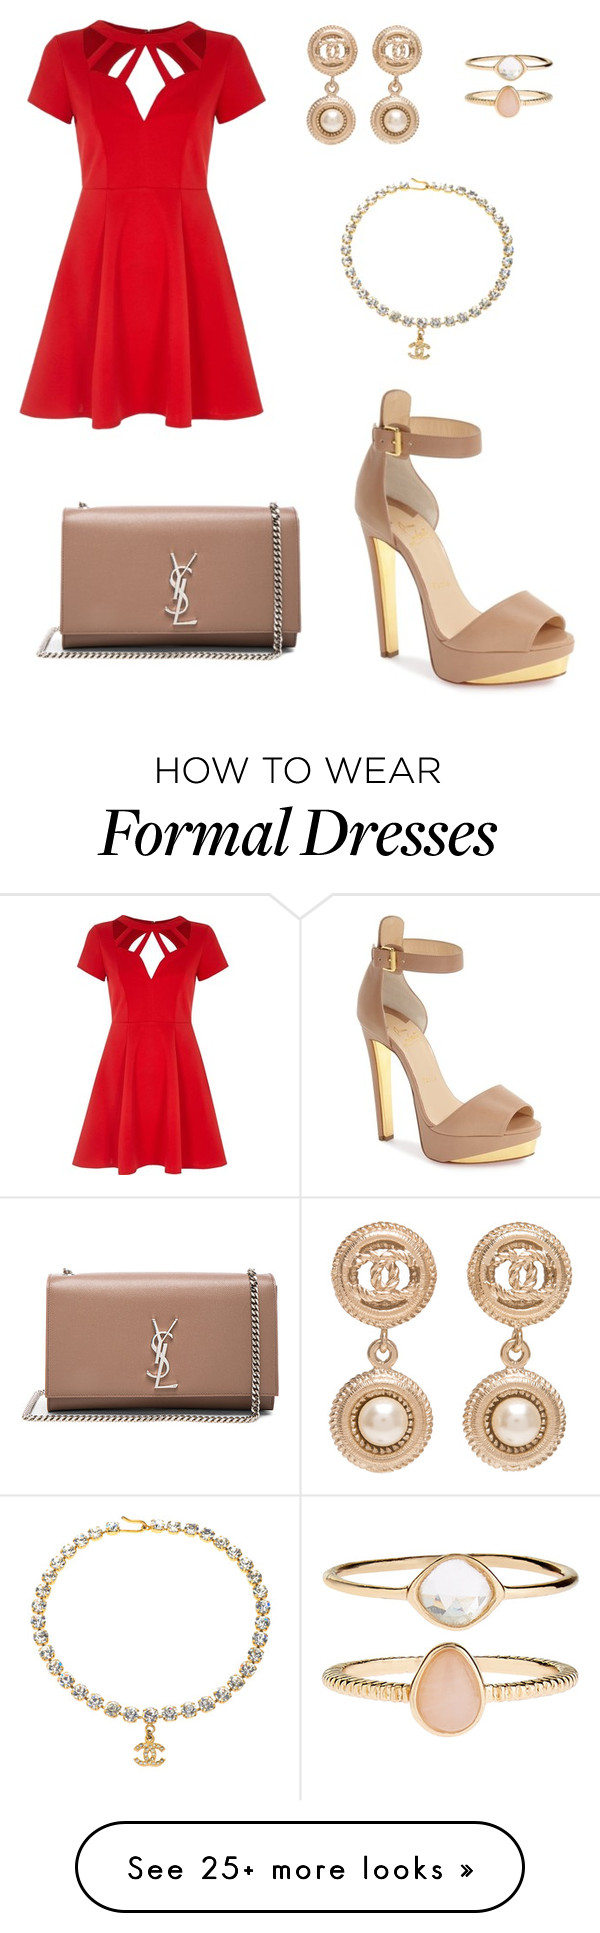 """""""The Caroline - Formal"""" by jordanstewart5747 on Polyvore featuring River Island, Christian Louboutin, Accessorize, Chanel and Yves Saint Laurent"""